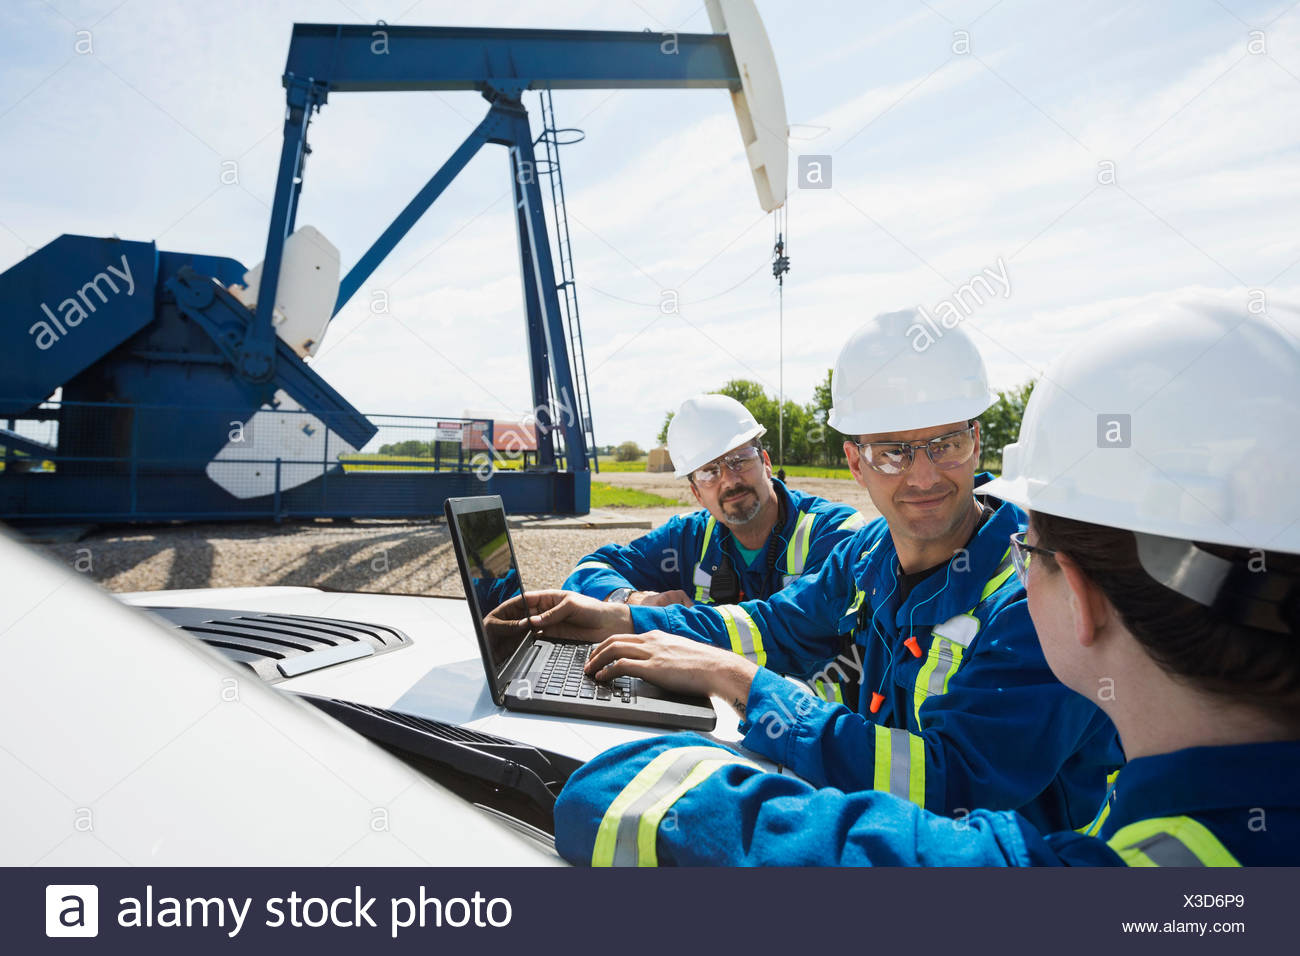 Workers with laptop talking near oil well - Stock Image